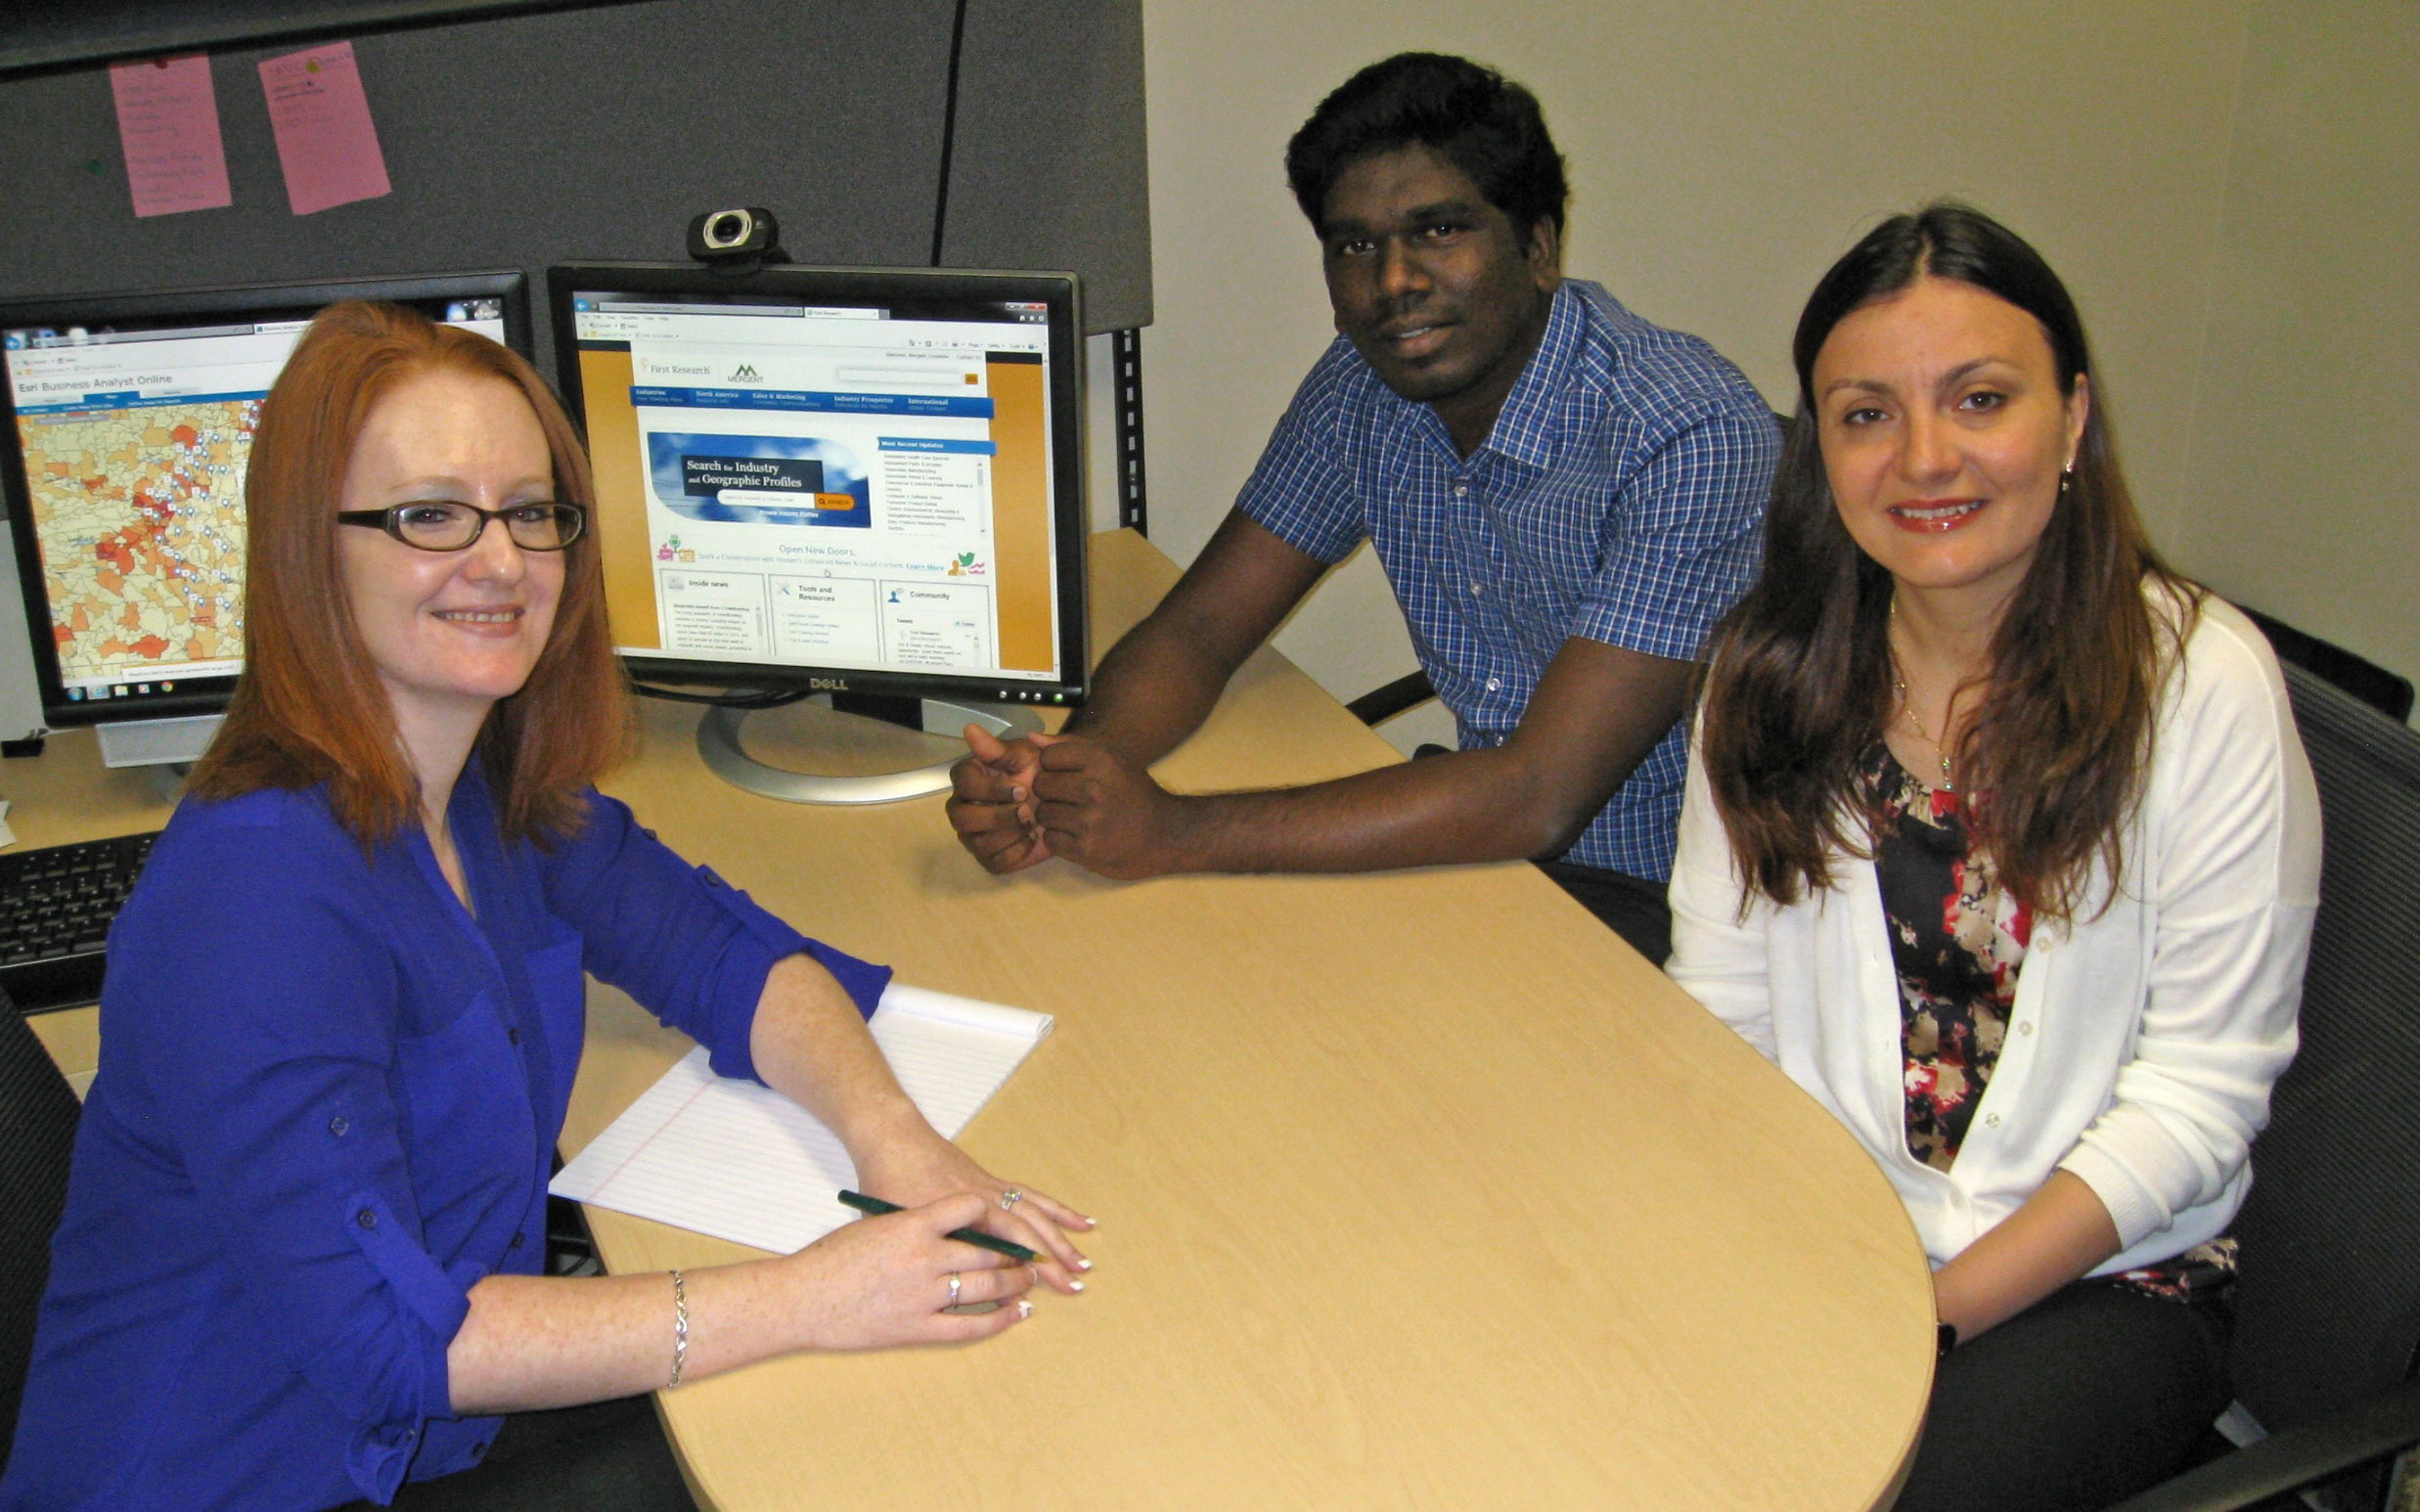 Graduate assistants in the UALR Arkansas Small Business and Technology Development Center are (from left) Anita Wheetley, Leo Albert Lobo and Gabriela Biris.